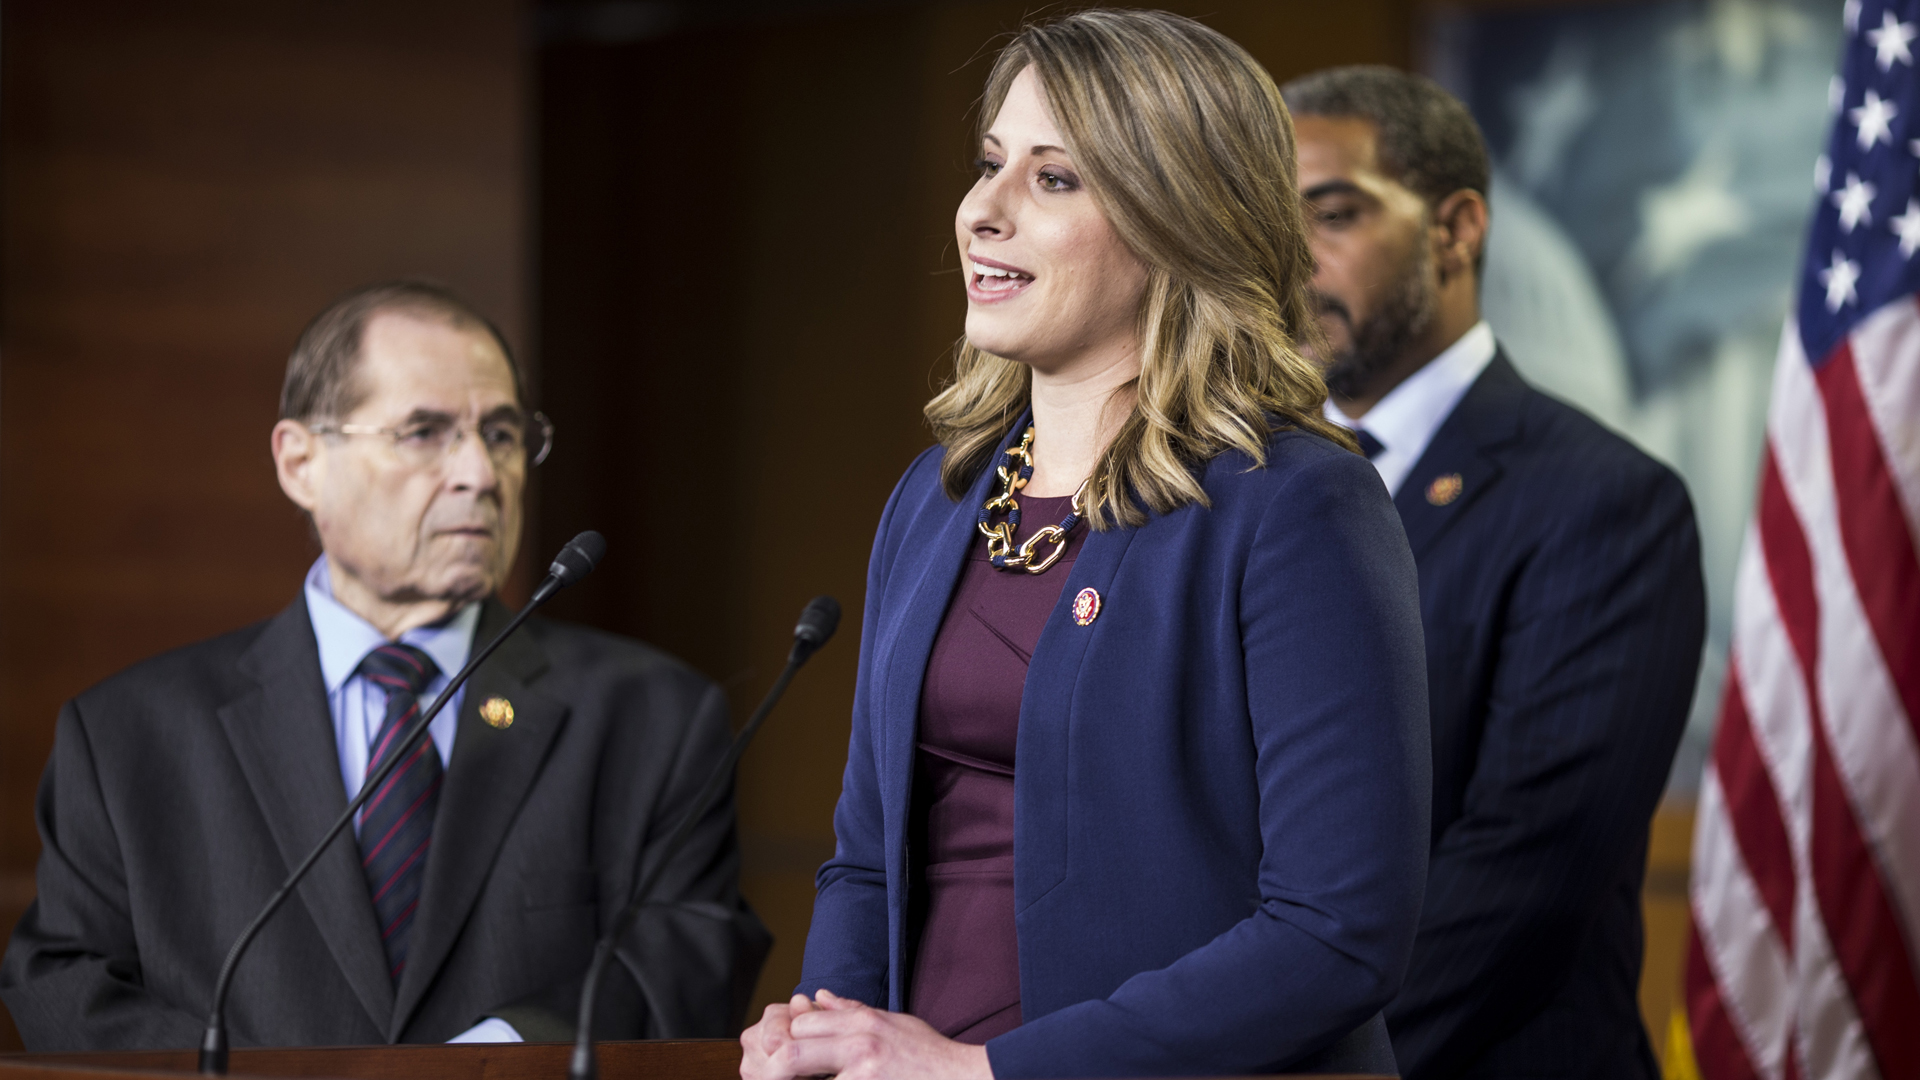 Rep. Katie Hill (D-CA) speaks during a news conference on April 9, 2019 in Washington, D.C. (Credit: Zach Gibson/Getty Images)